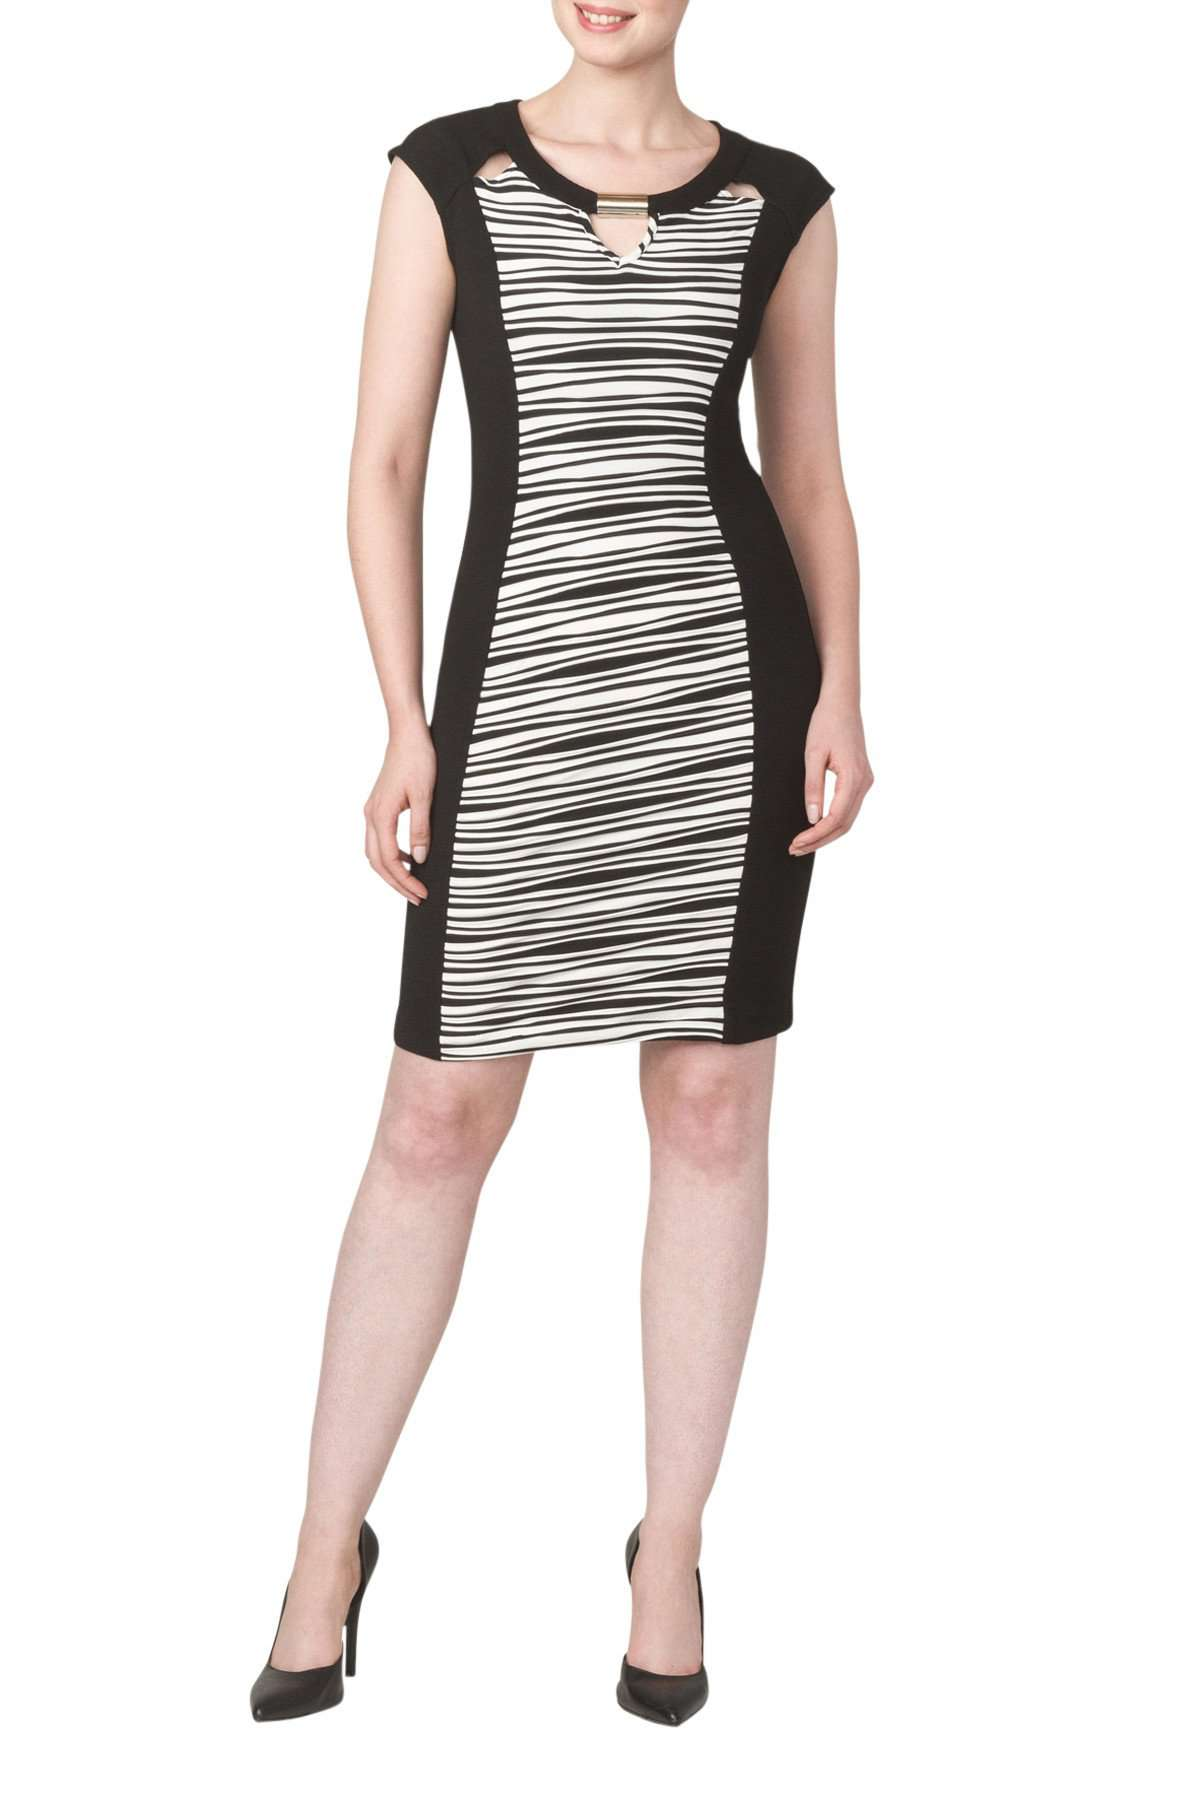 Women's Black and White Dress - Yvonne Marie - Yvonne Marie